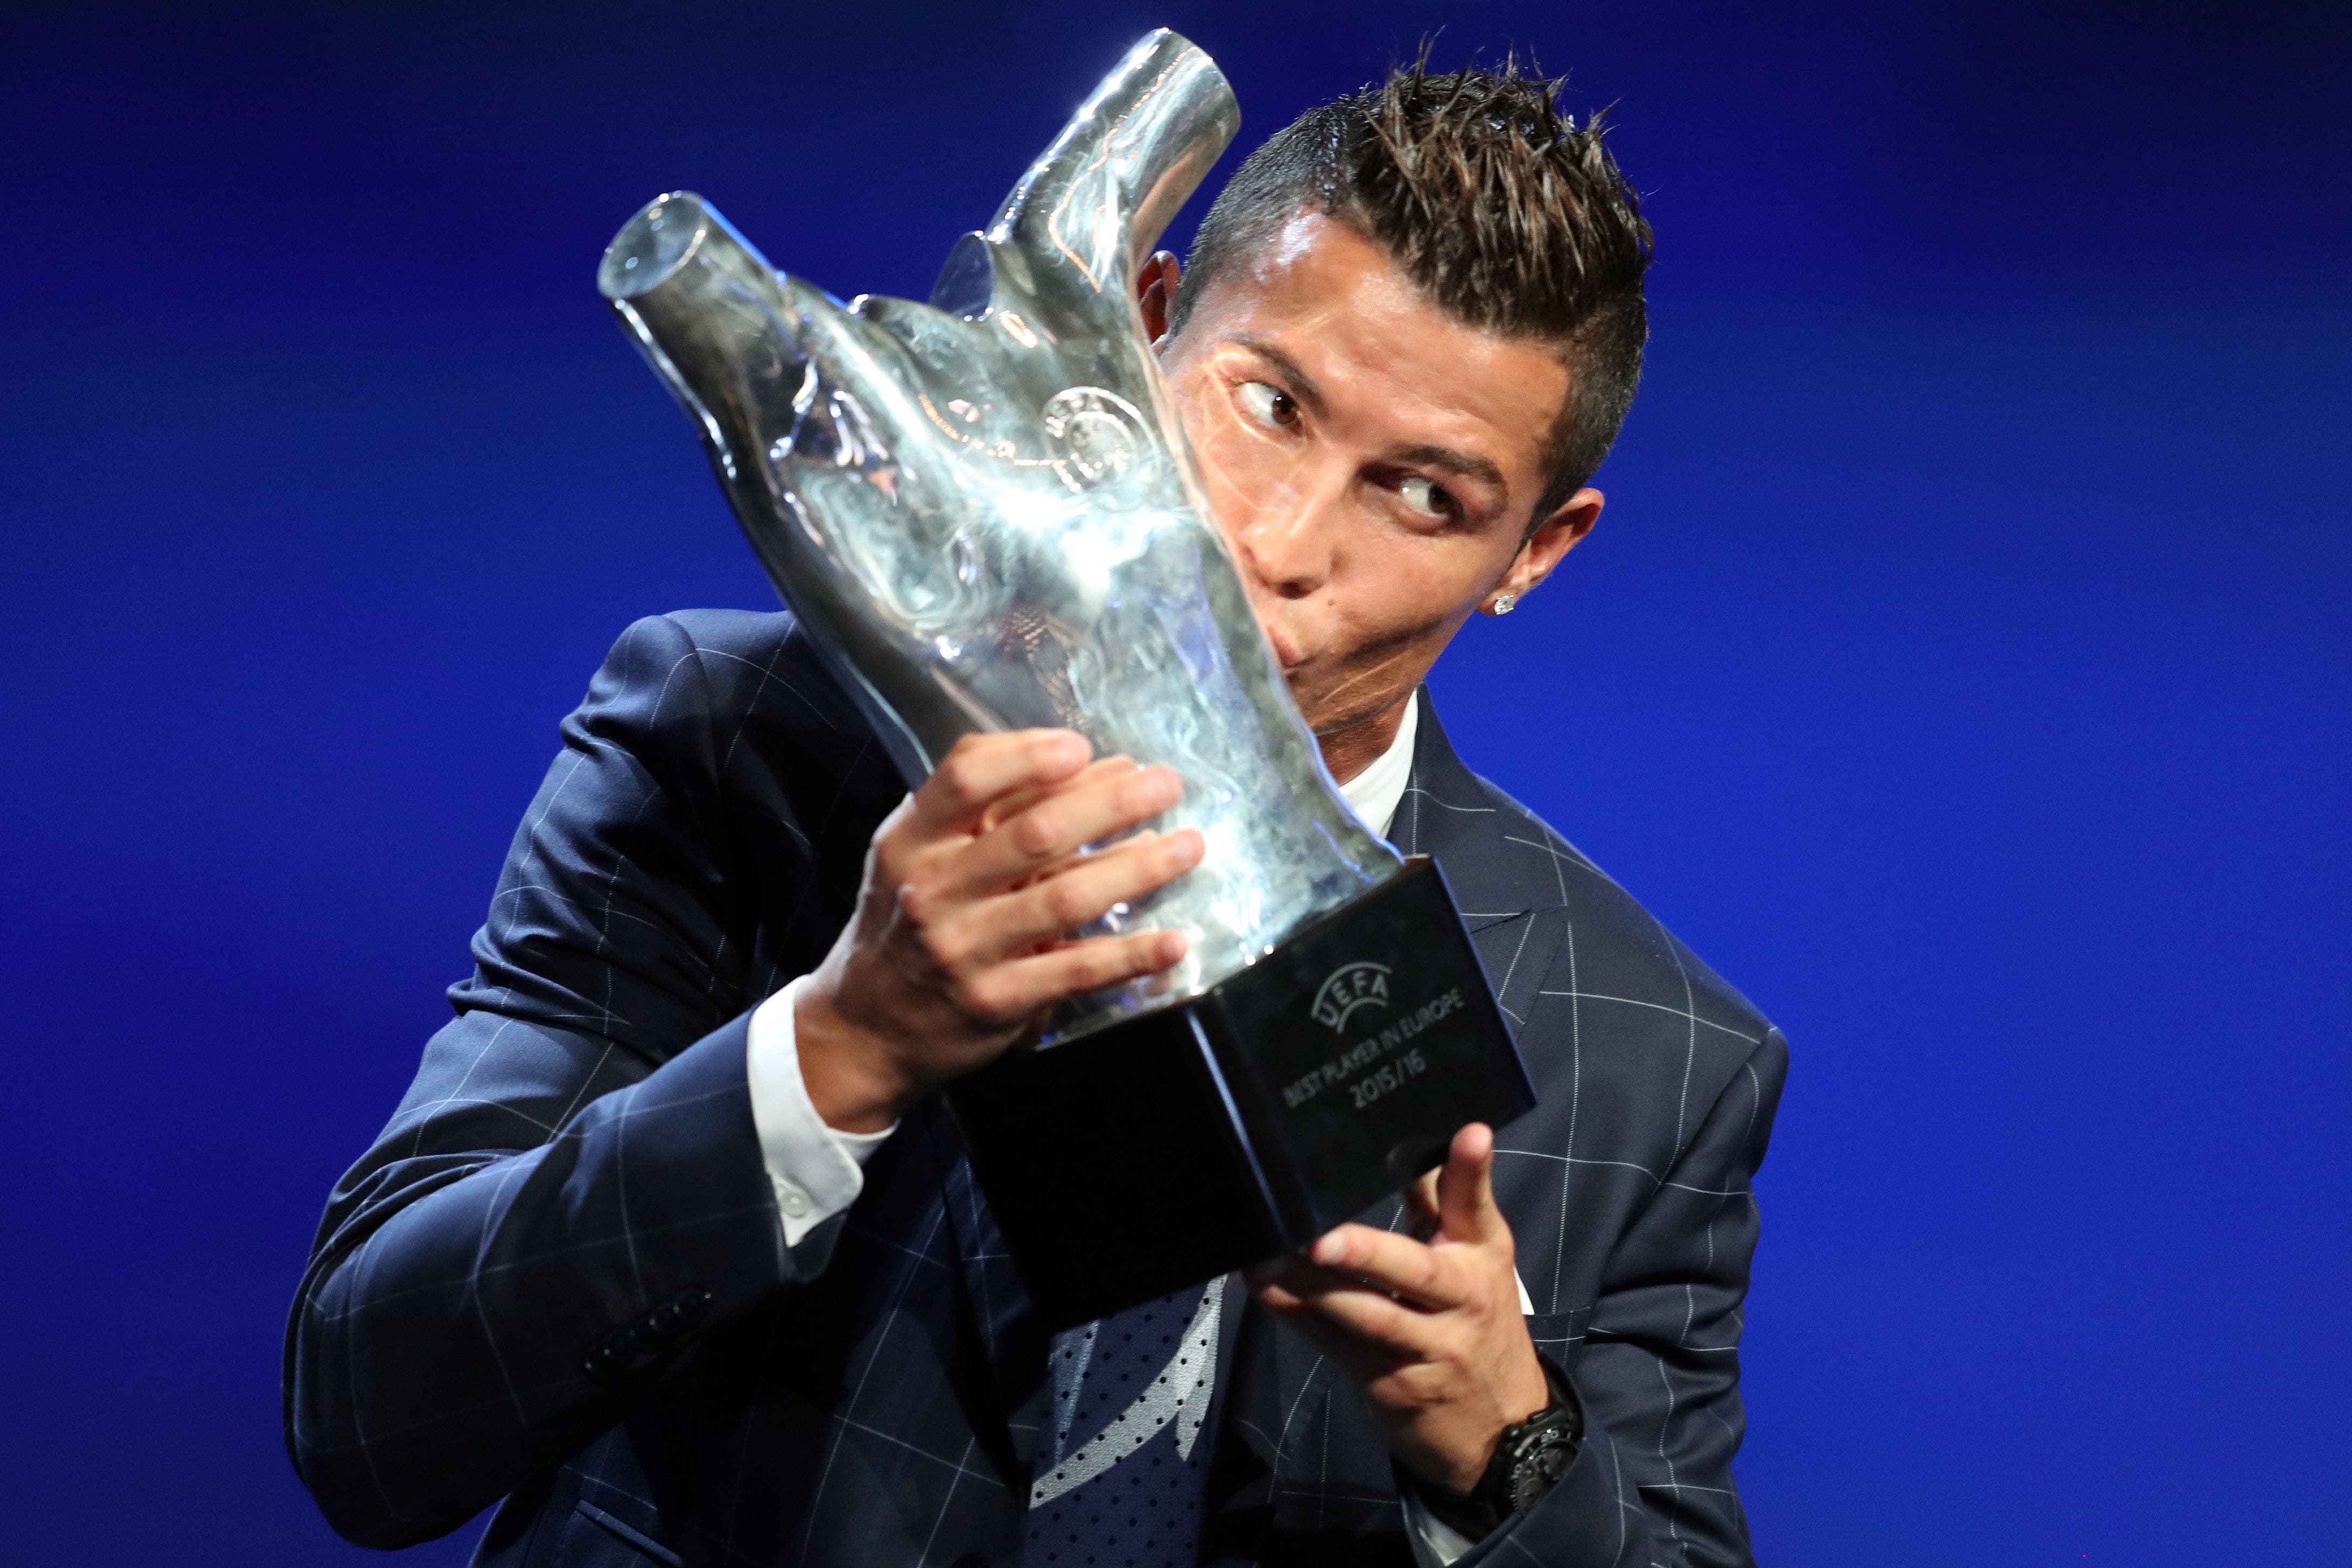 Real Madrid's Portuguese forward Cristiano Ronaldo kisses his trophy of Best Men's player in Europe at the end of the UEFA Champions League Group stage draw ceremony, on August 25, 2016 in Monaco. AFP PHOTO / VALERY HACHE